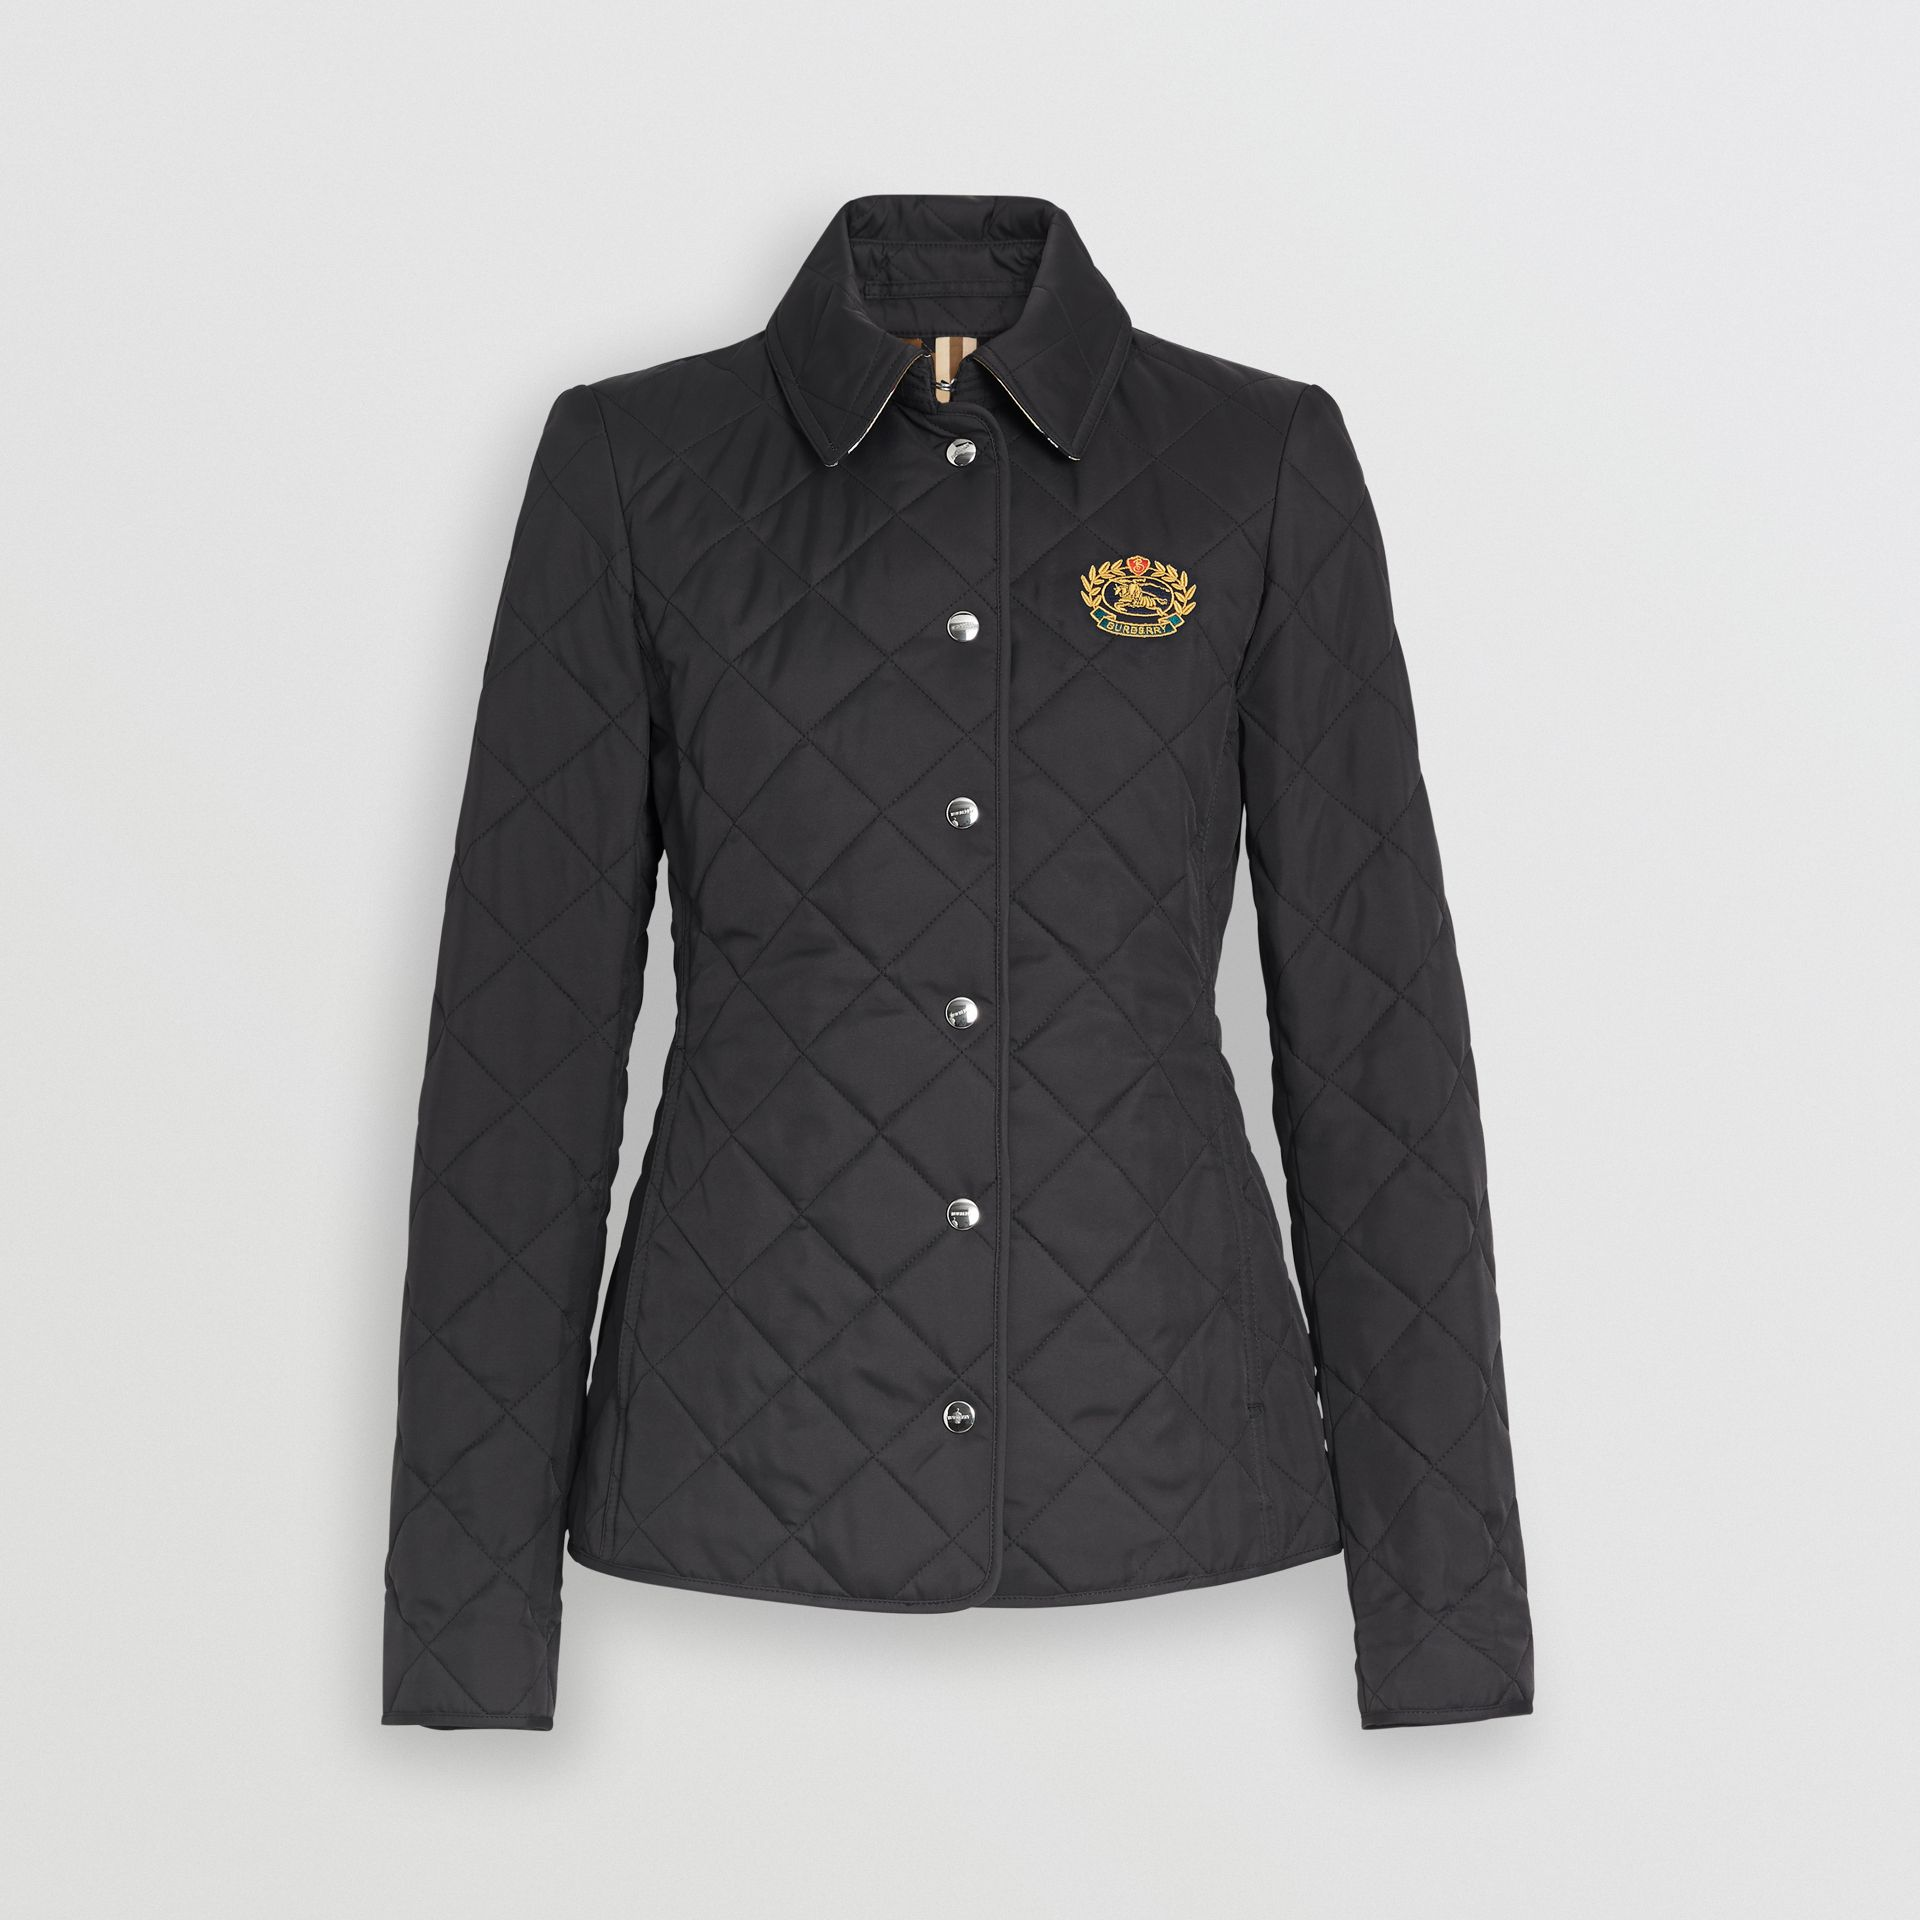 Embroidered Crest Diamond Quilted Jacket in Black - Women | Burberry - gallery image 3